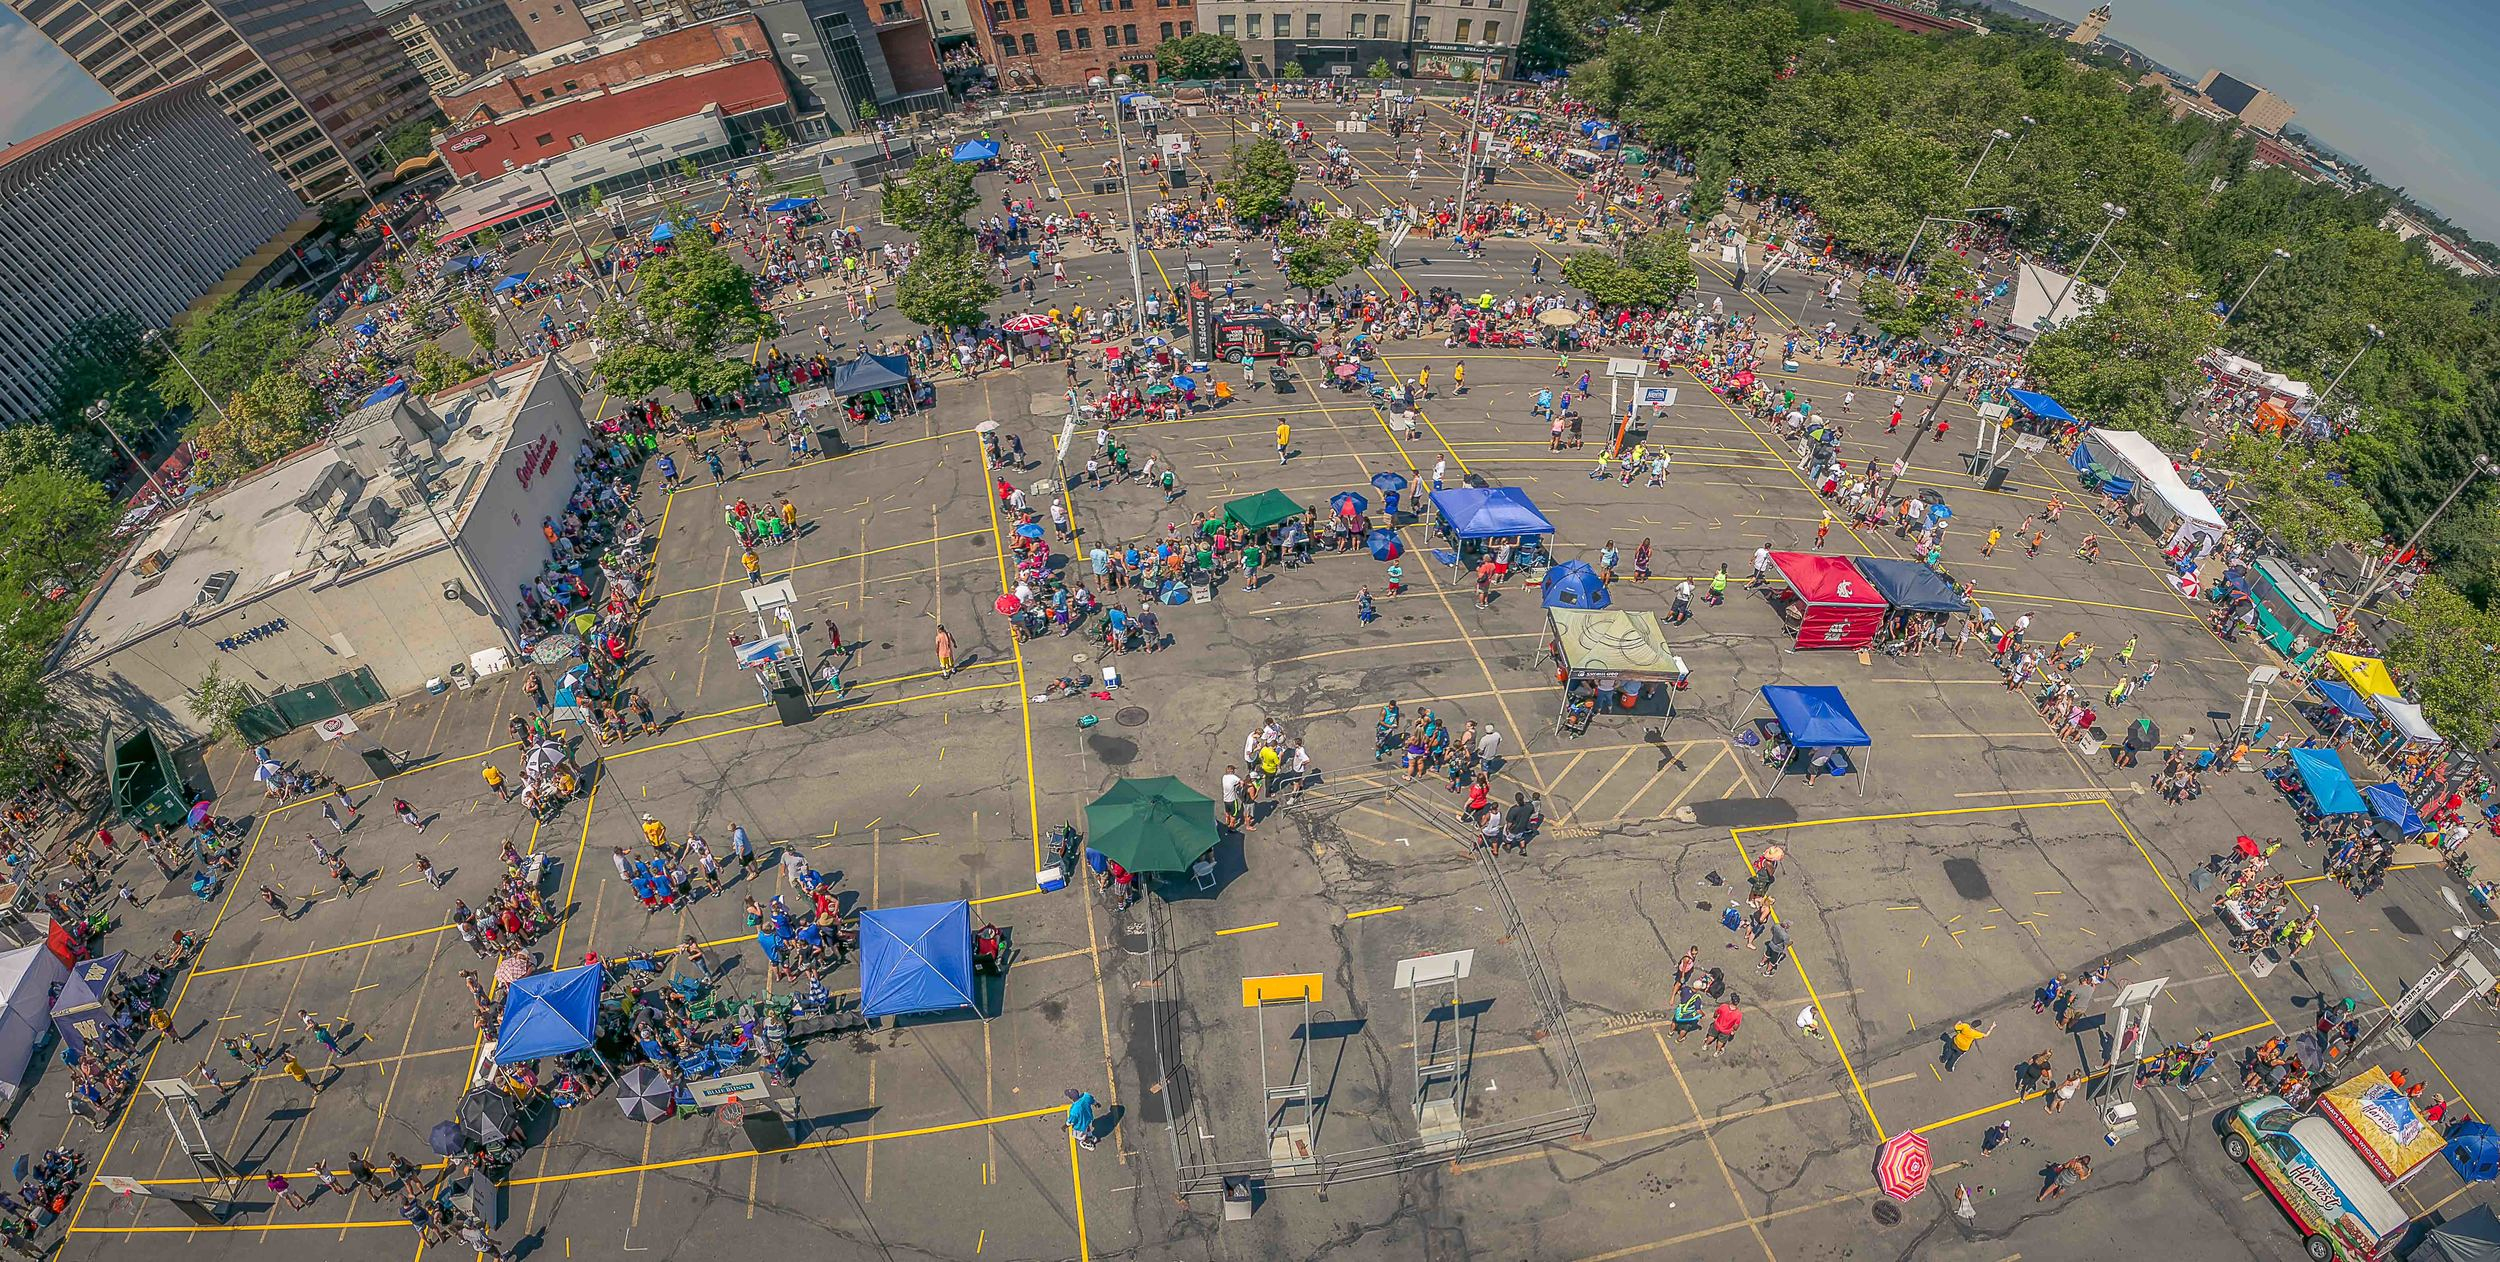 Hoopfest 2015 - Sat - Liberty - danscape (15 of 47)-Pano.jpg